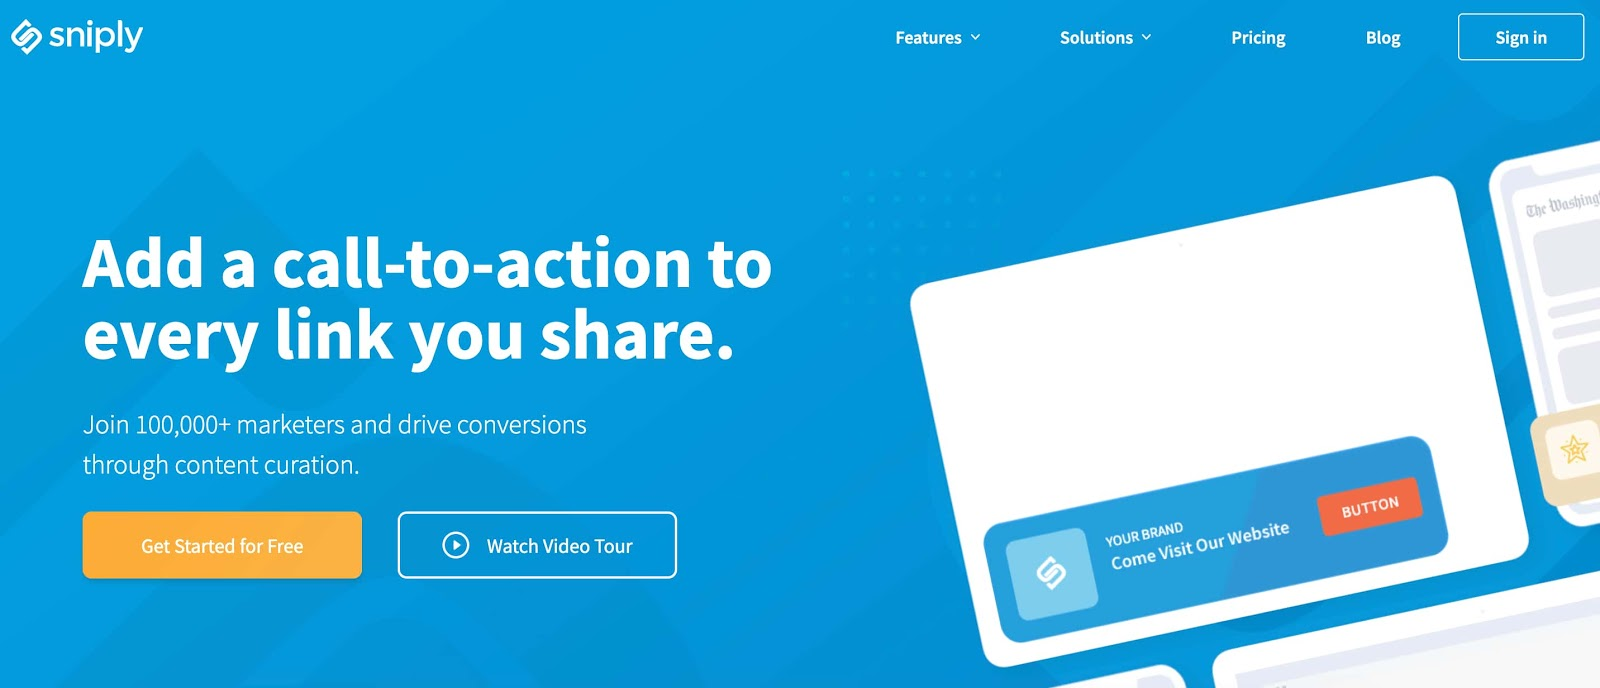 Sniply CTA call-to-action tool